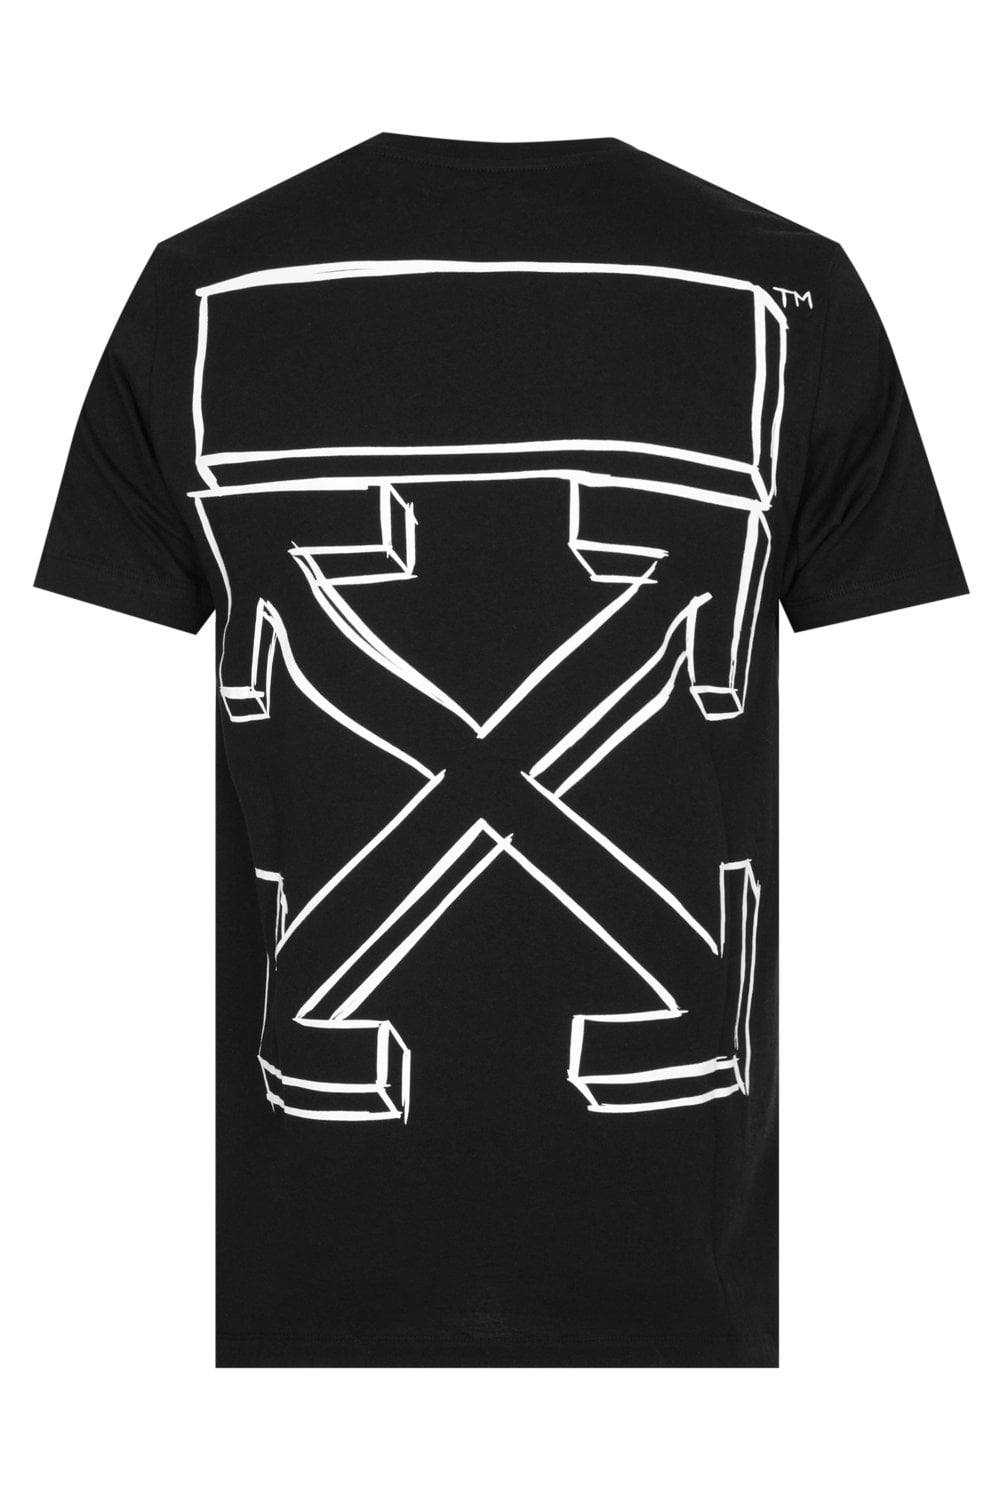 b832c09b0662 Off-White Marker Arrows T-shirt Black